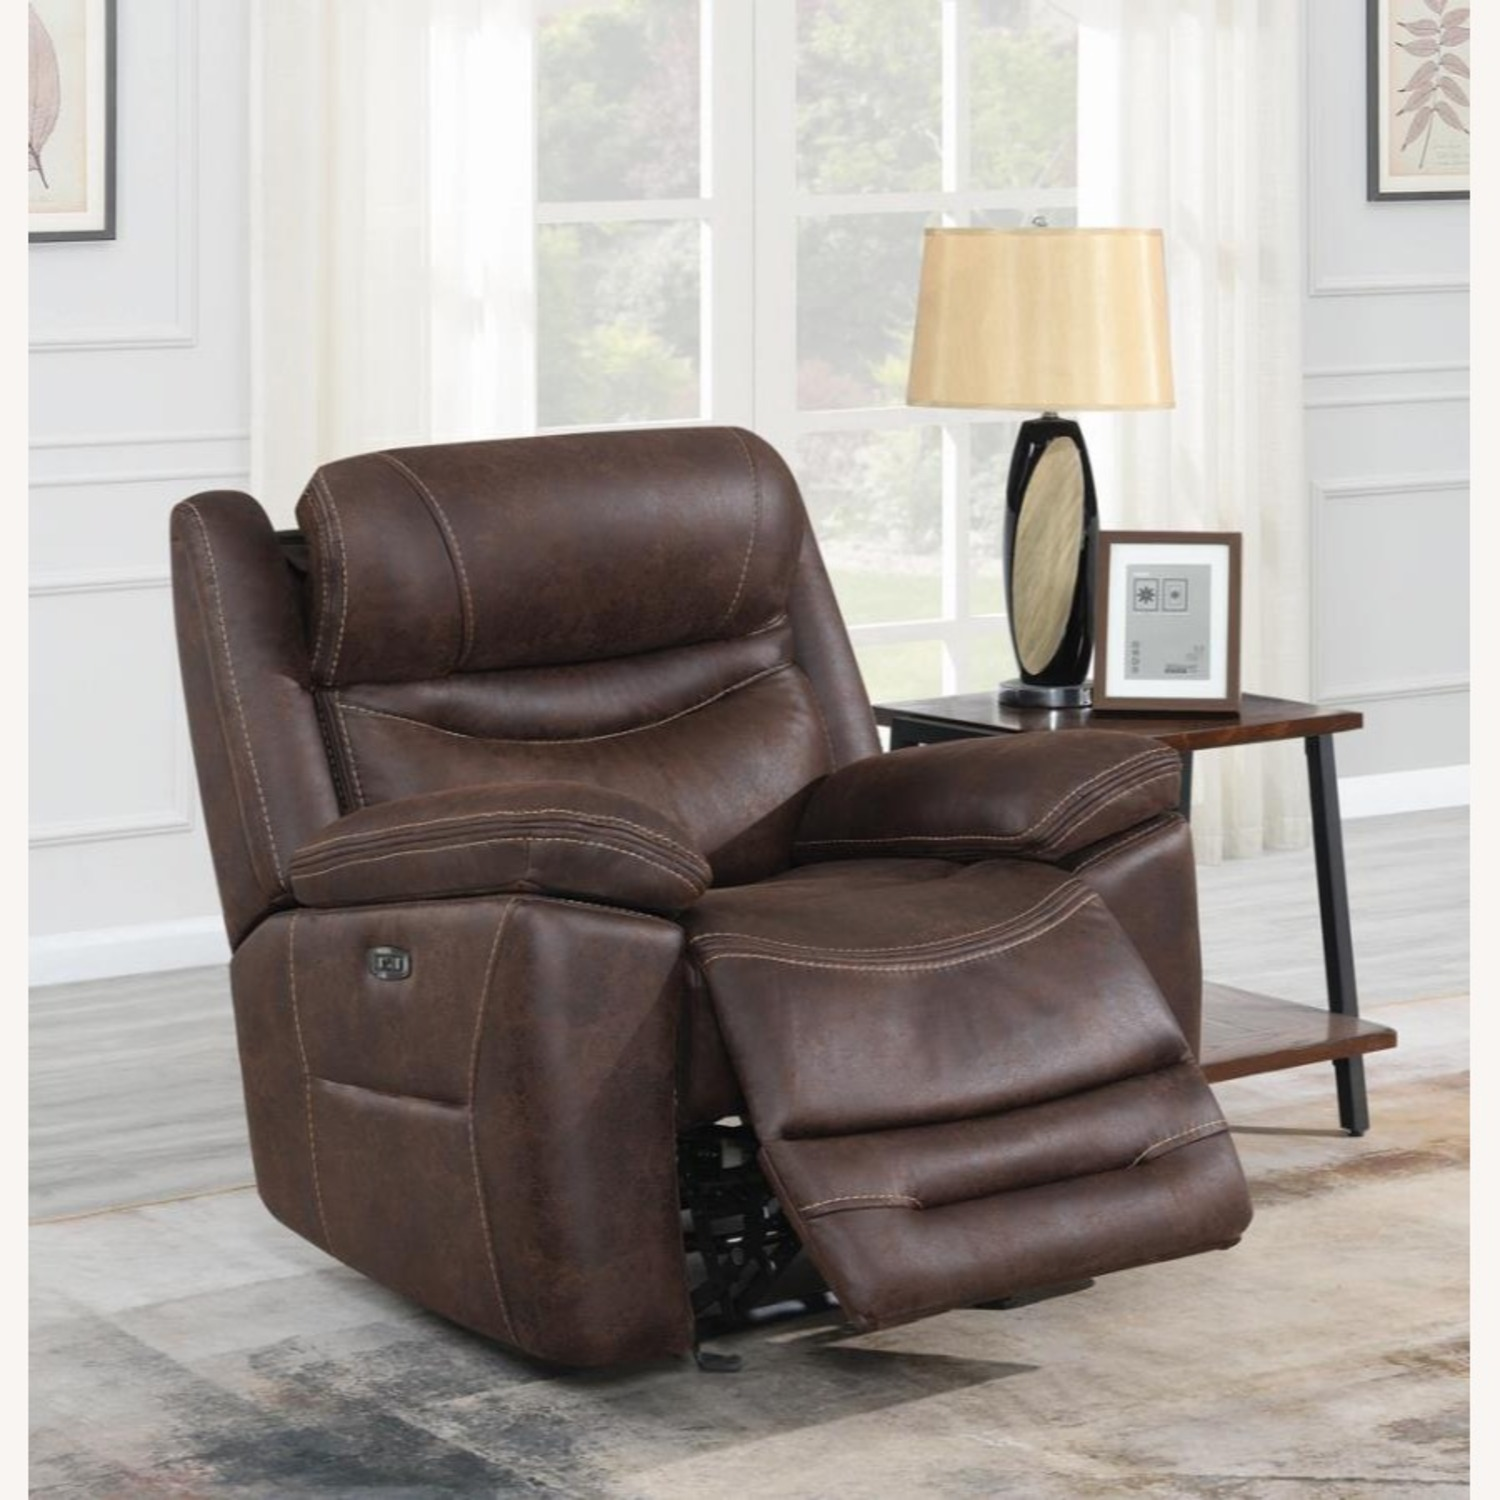 Power Glider Recliner In Chocolate Faux Upholstery - image-8